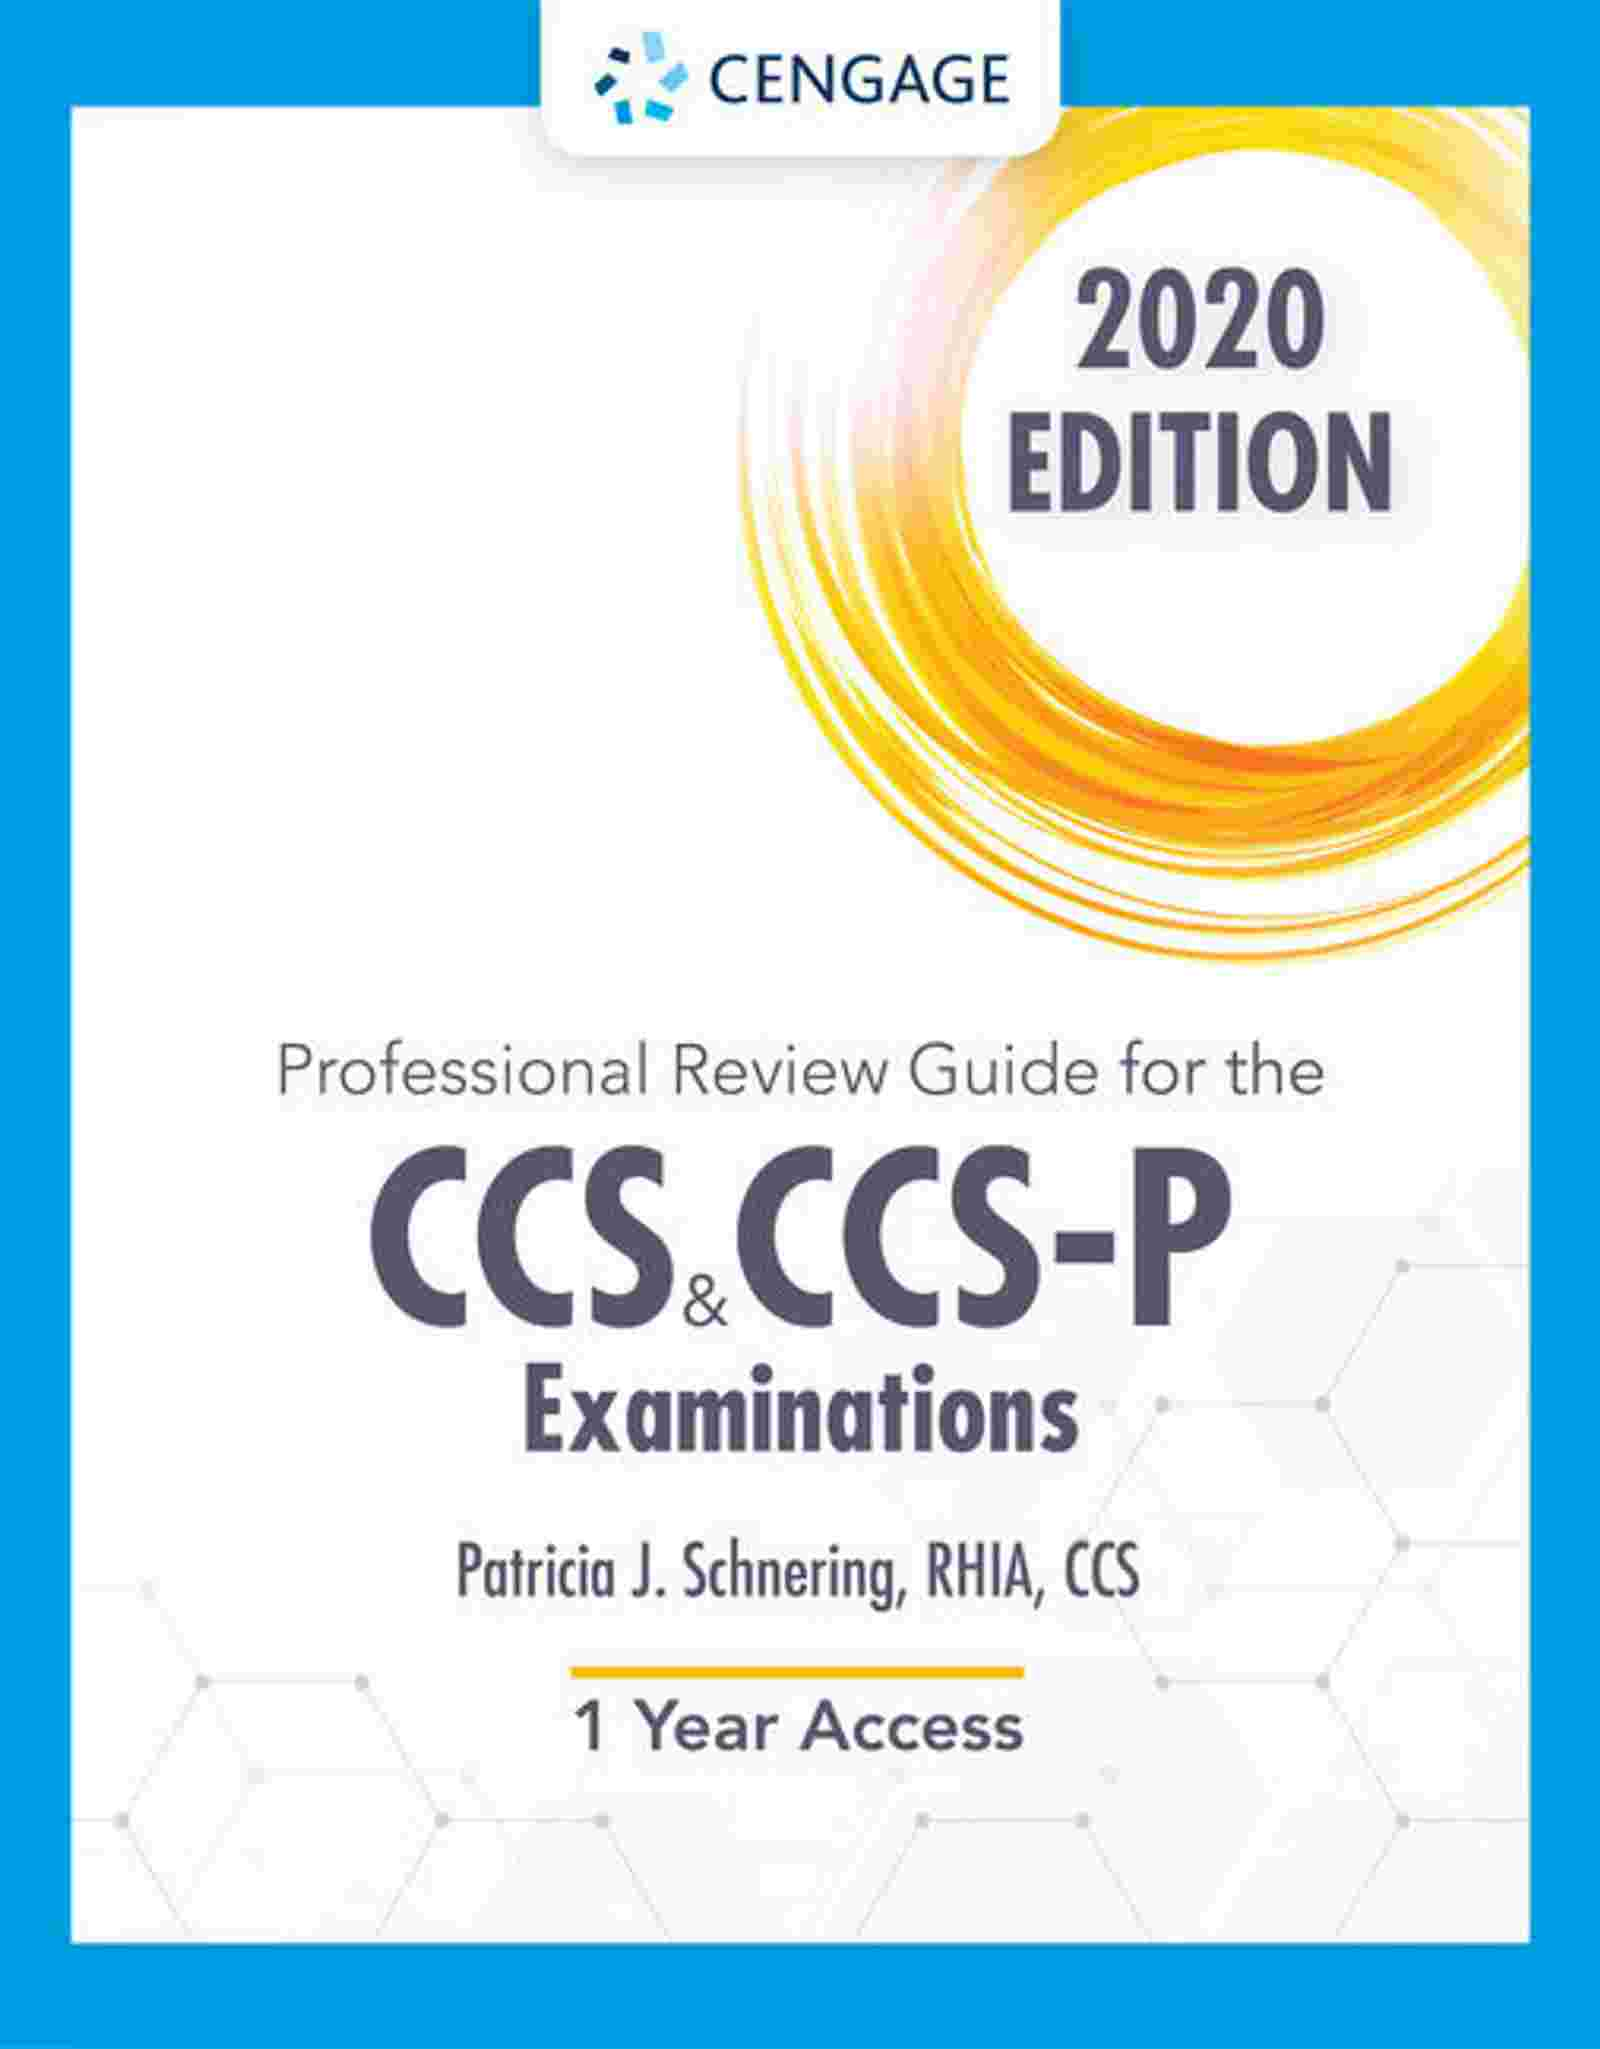 Professional Review Guide Online for the CCS/CCS-P Examinations, 2020, 2 terms Instant Access